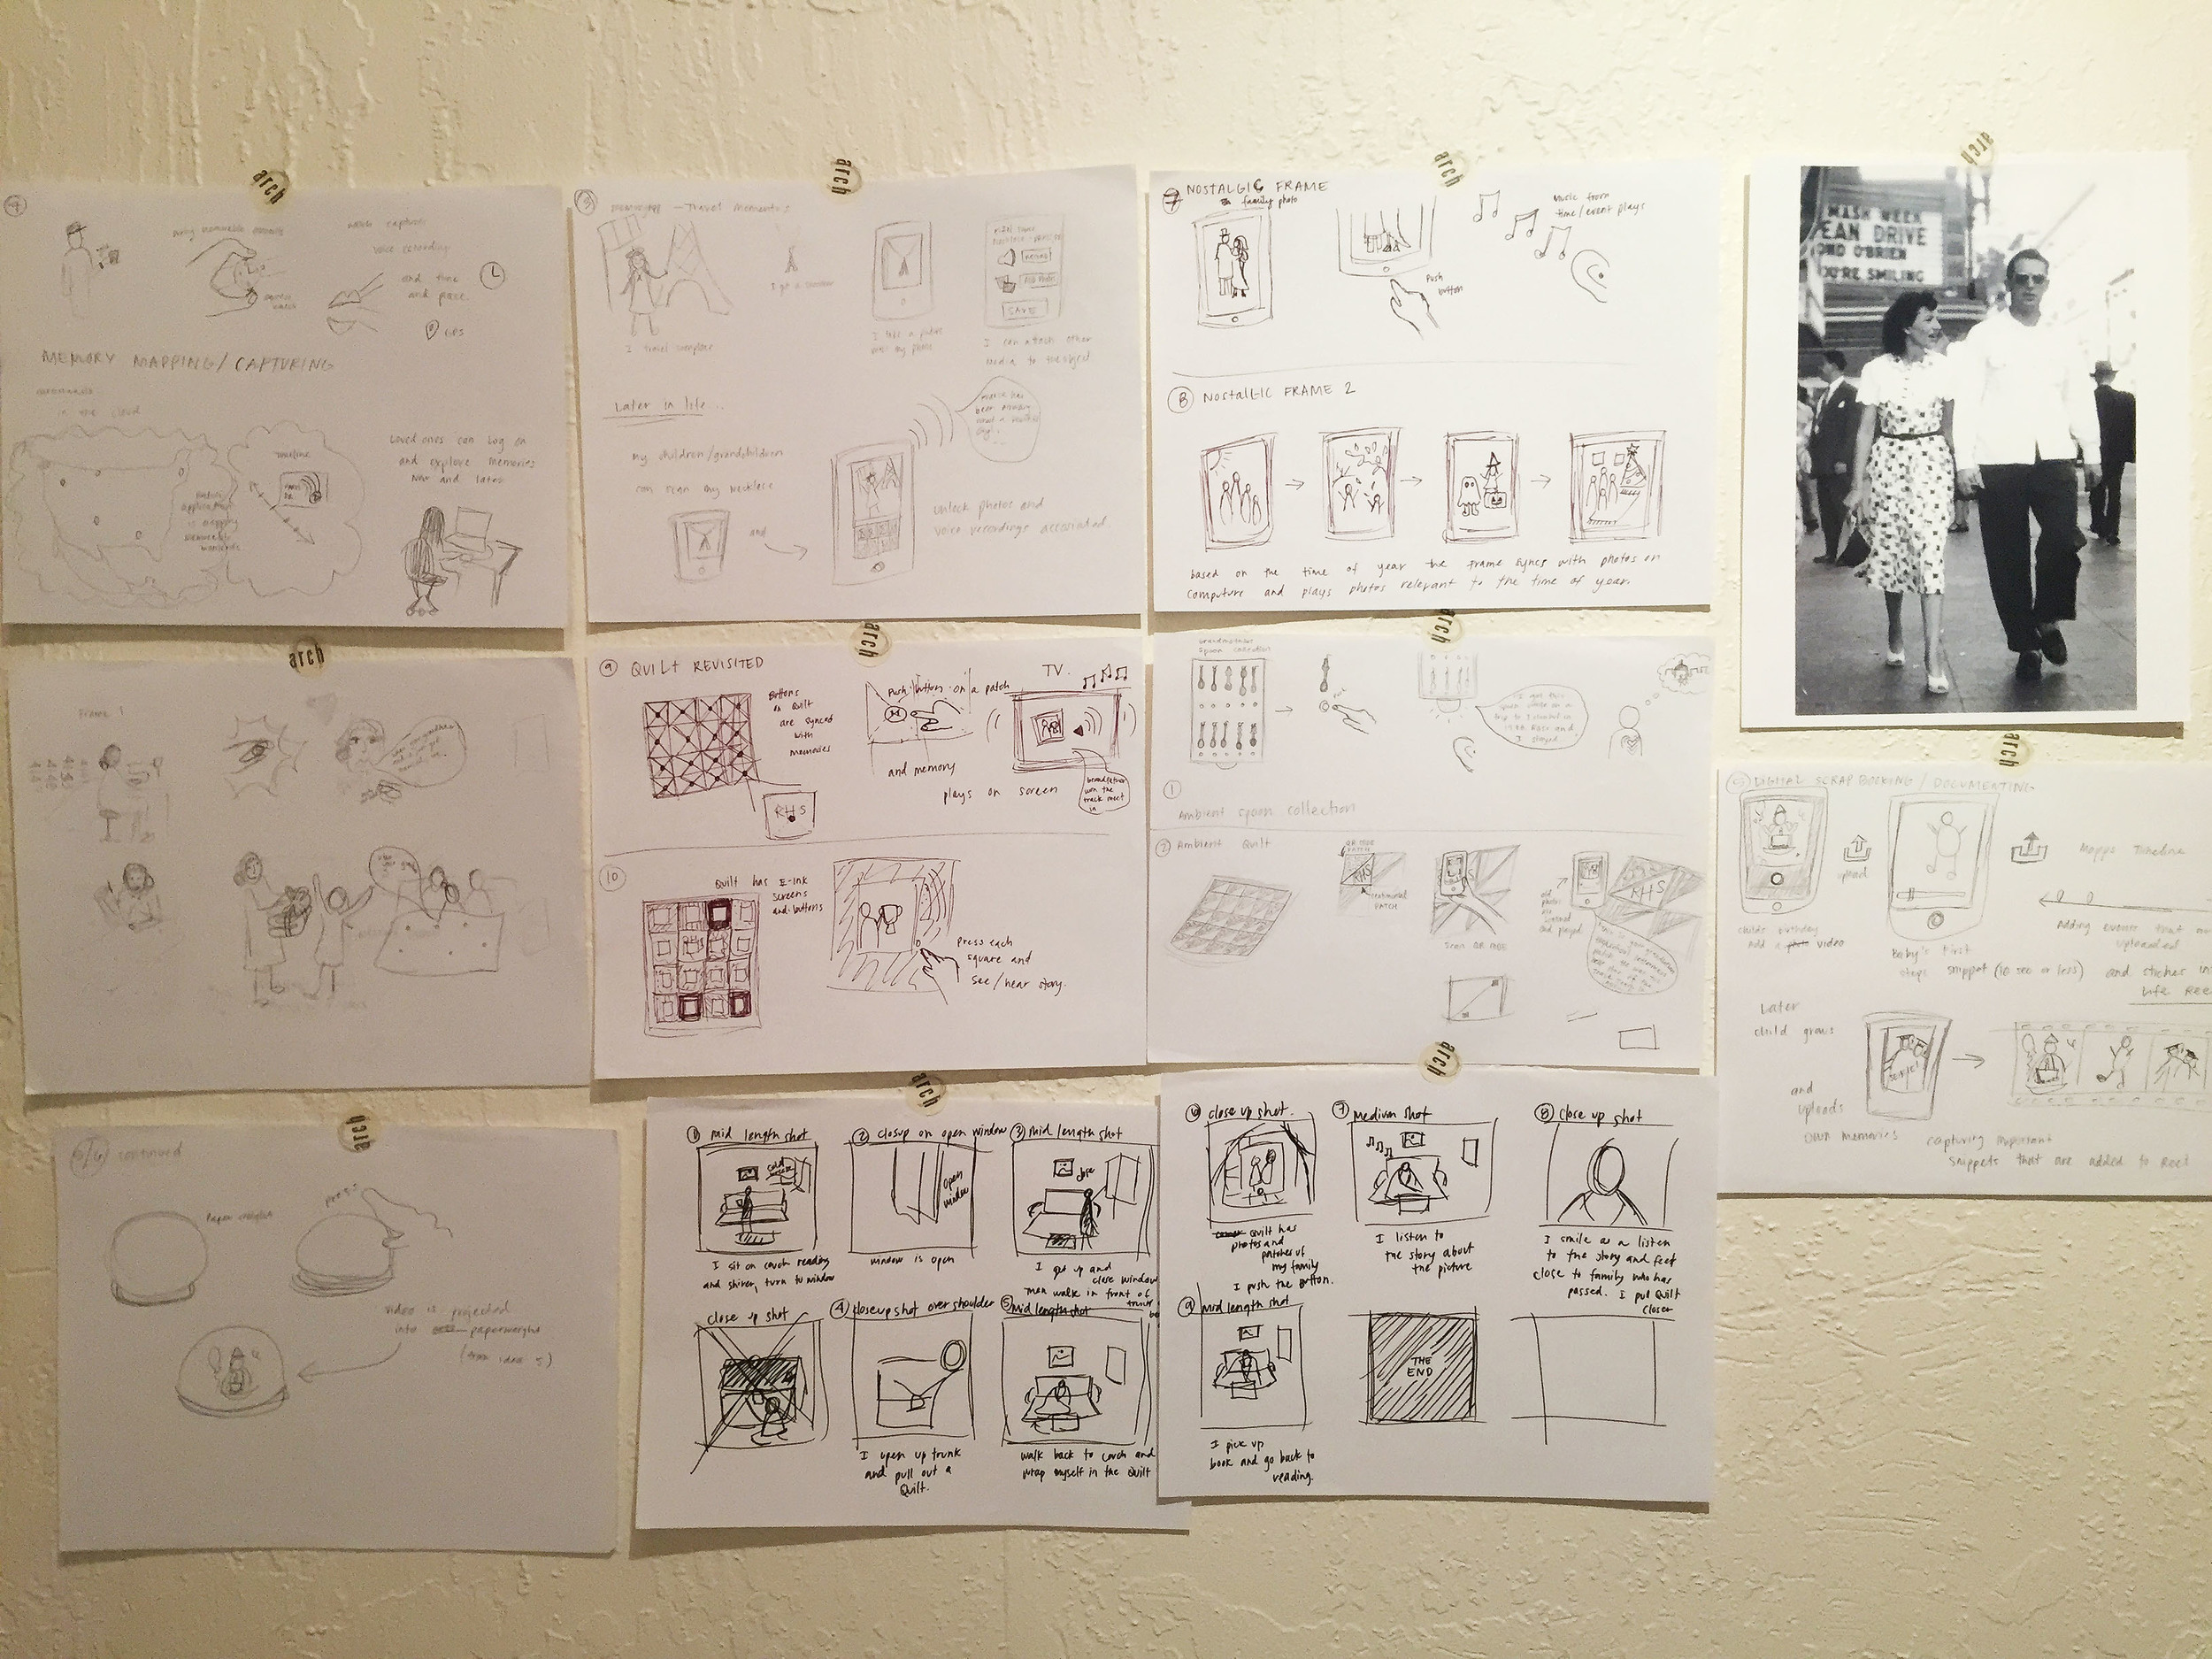 SKETCHING:  I used sketching as a brainstorming tool for ideation, using my own heirlooms as inspiration.